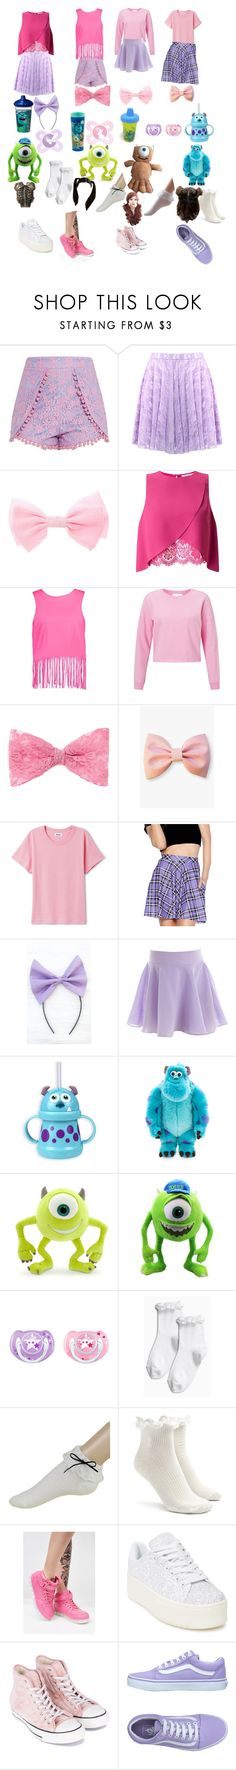 """""""4 days of boo"""" by adorkalility-1 ❤ liked on Polyvore featuring Miss Selfridge, Boohoo, WithChic, Lulu in the Sky, INC International Concepts, Disney, Naissance, Forever 21, N.Y.L.A. and Cape Robbin"""